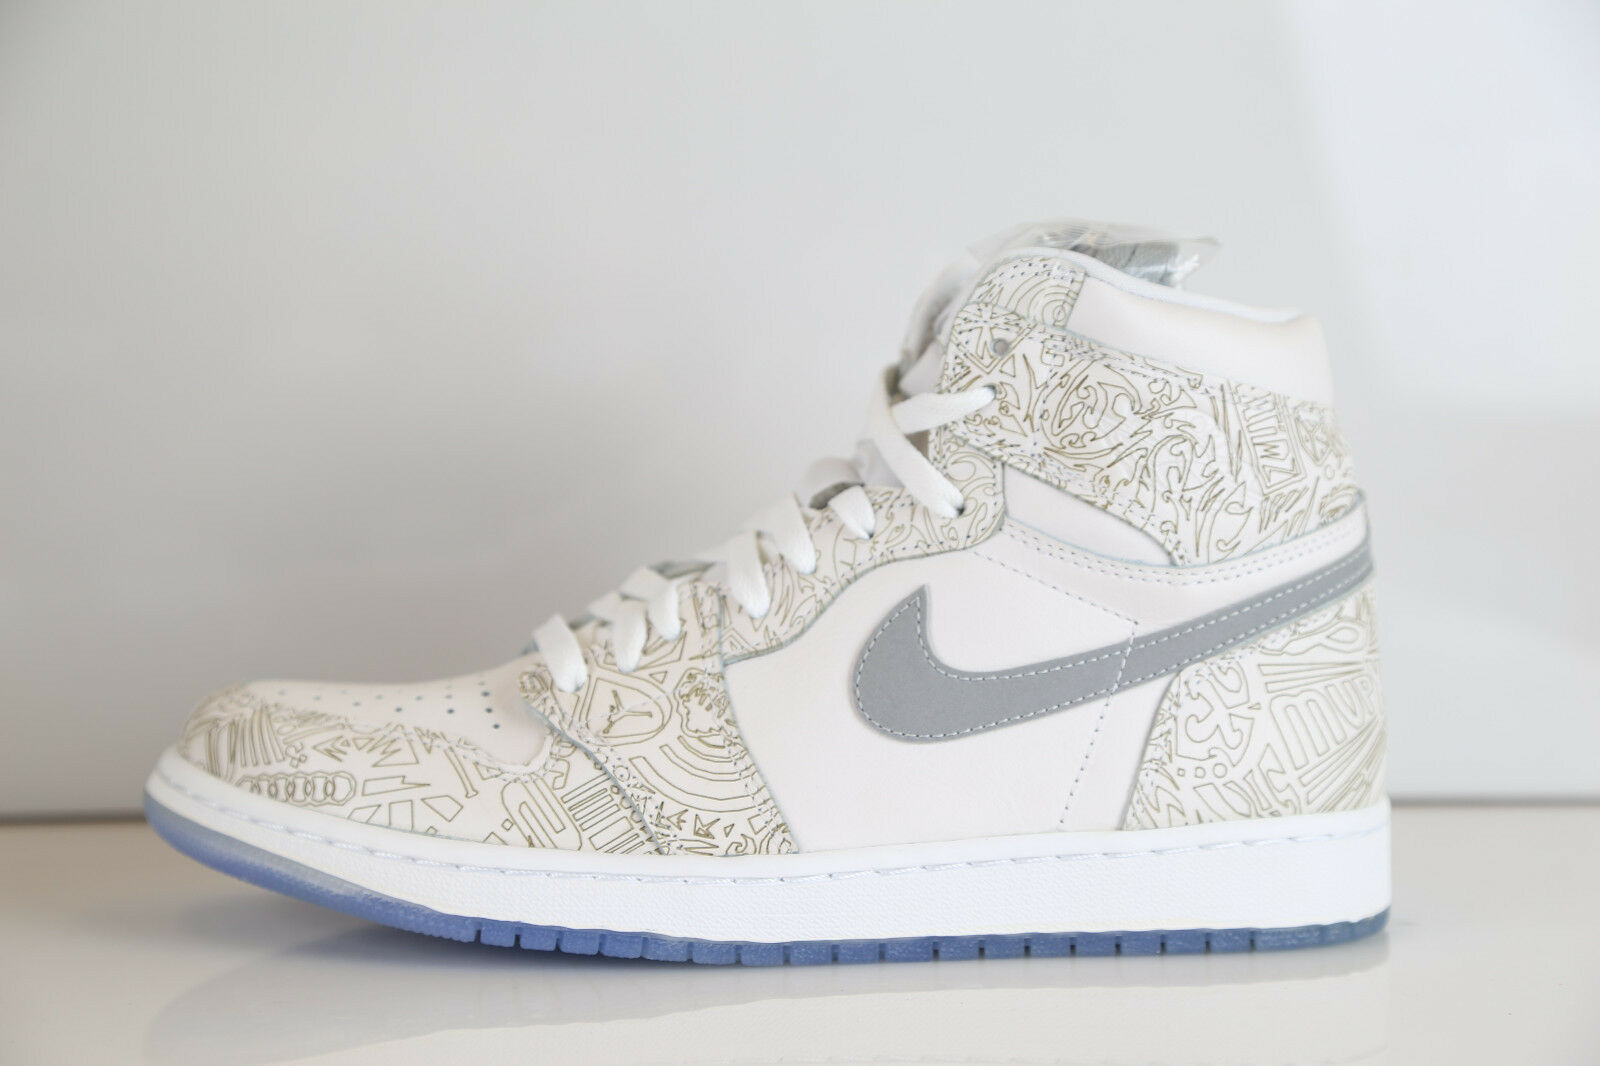 Nike Air Jordan Retro 1 High OG Laser Premium 705289-100 10-15  11 12 The latest discount shoes for men and women